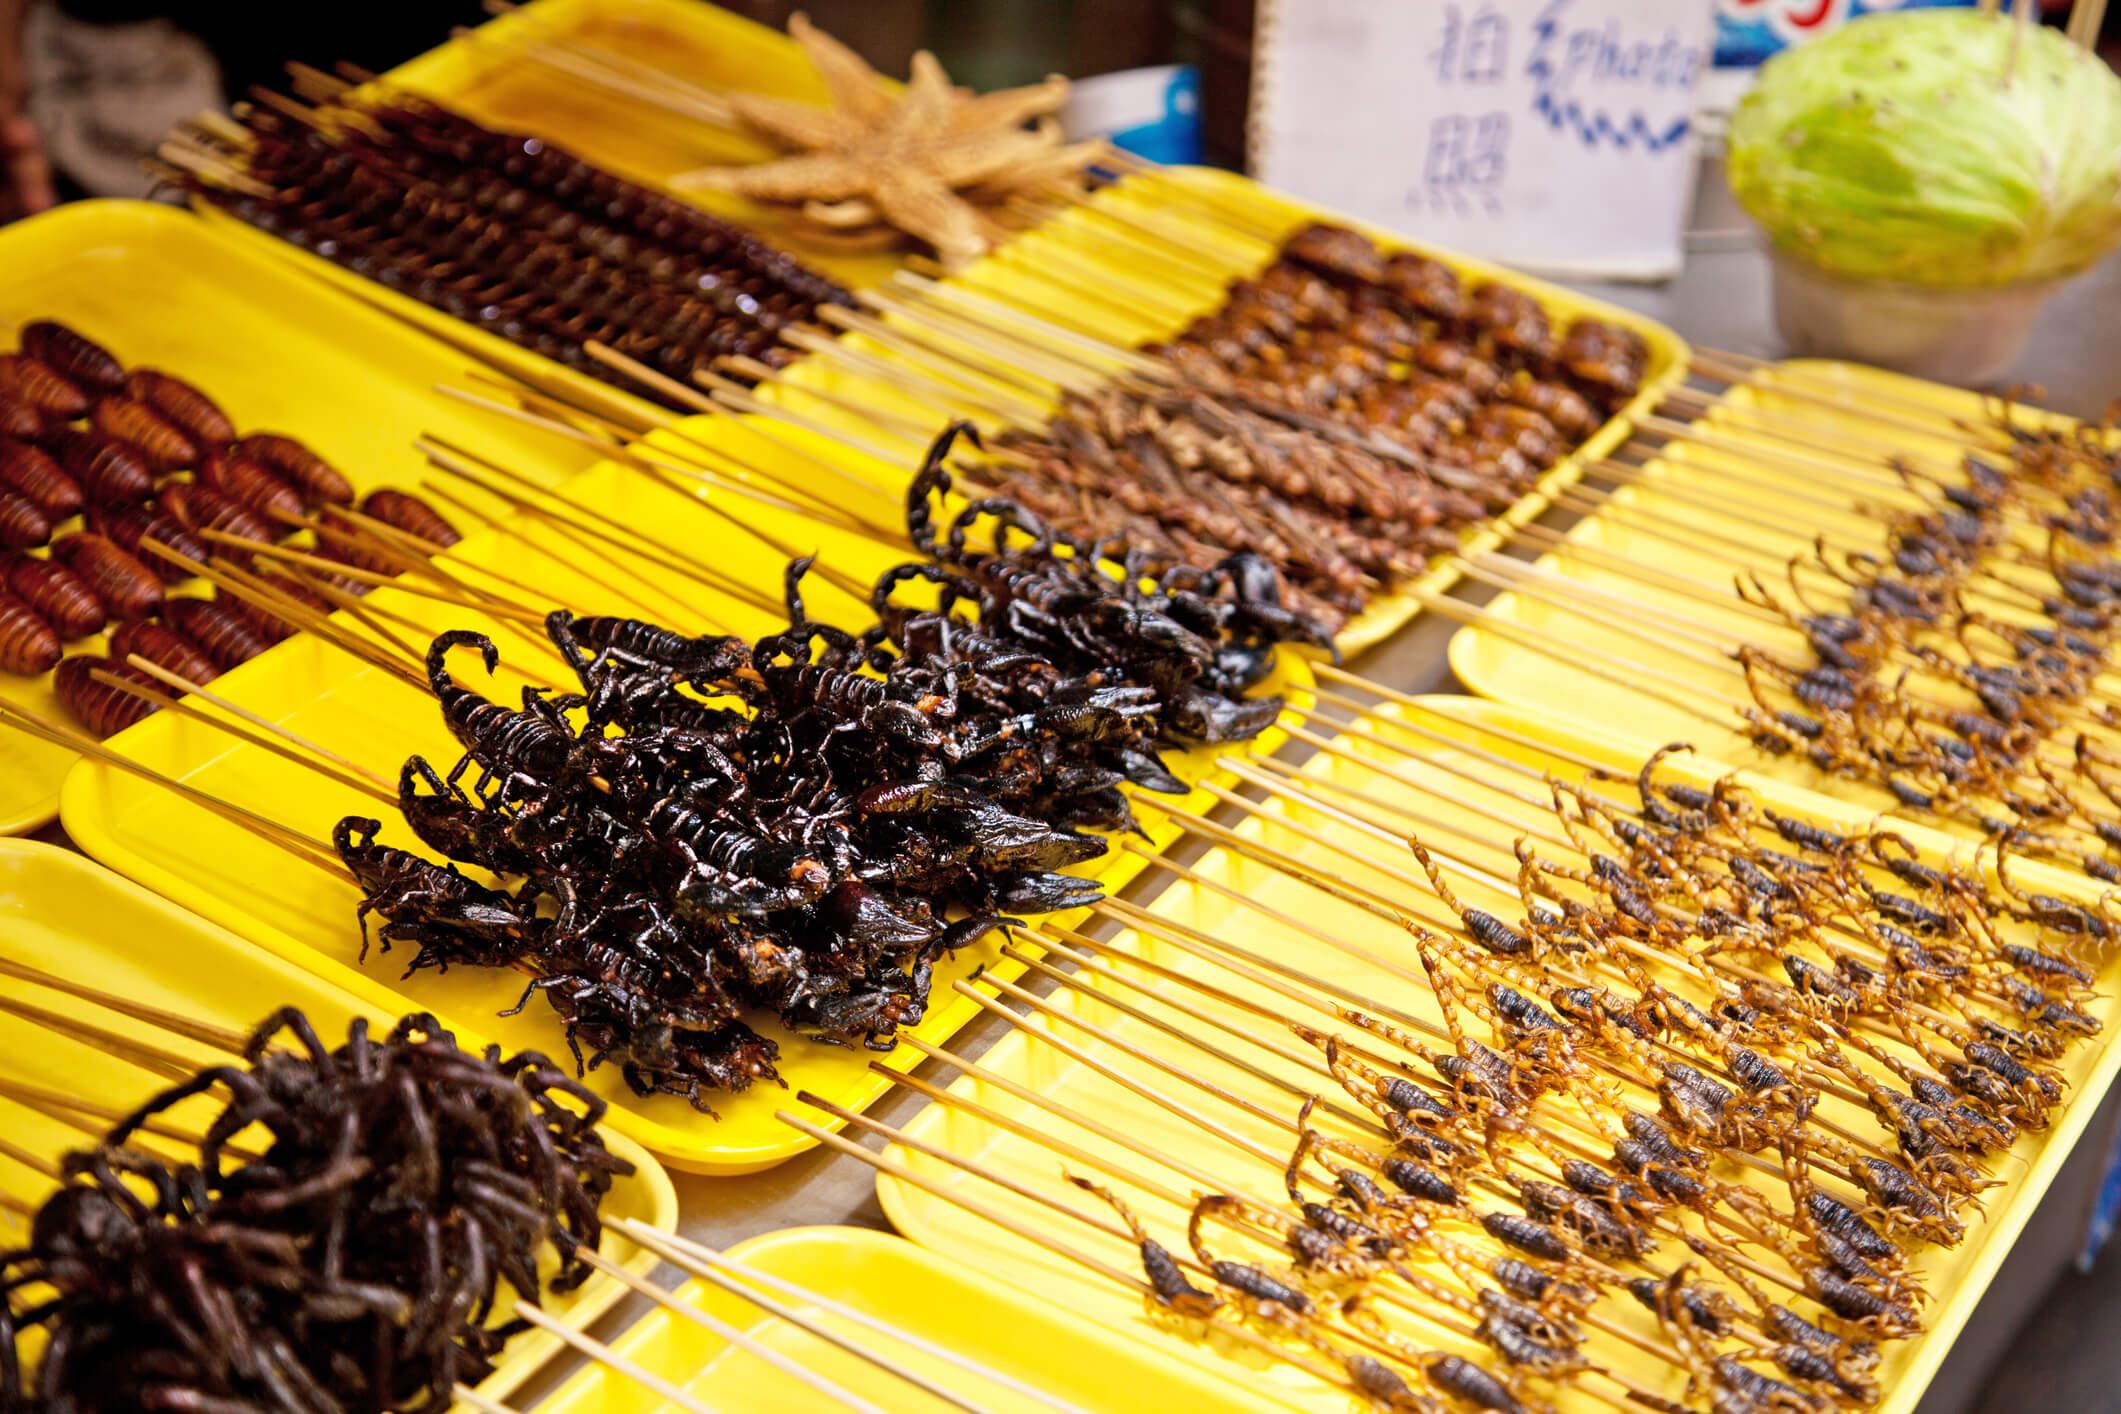 Chinese food market with a selection of scorpions and other insects - chinese customs